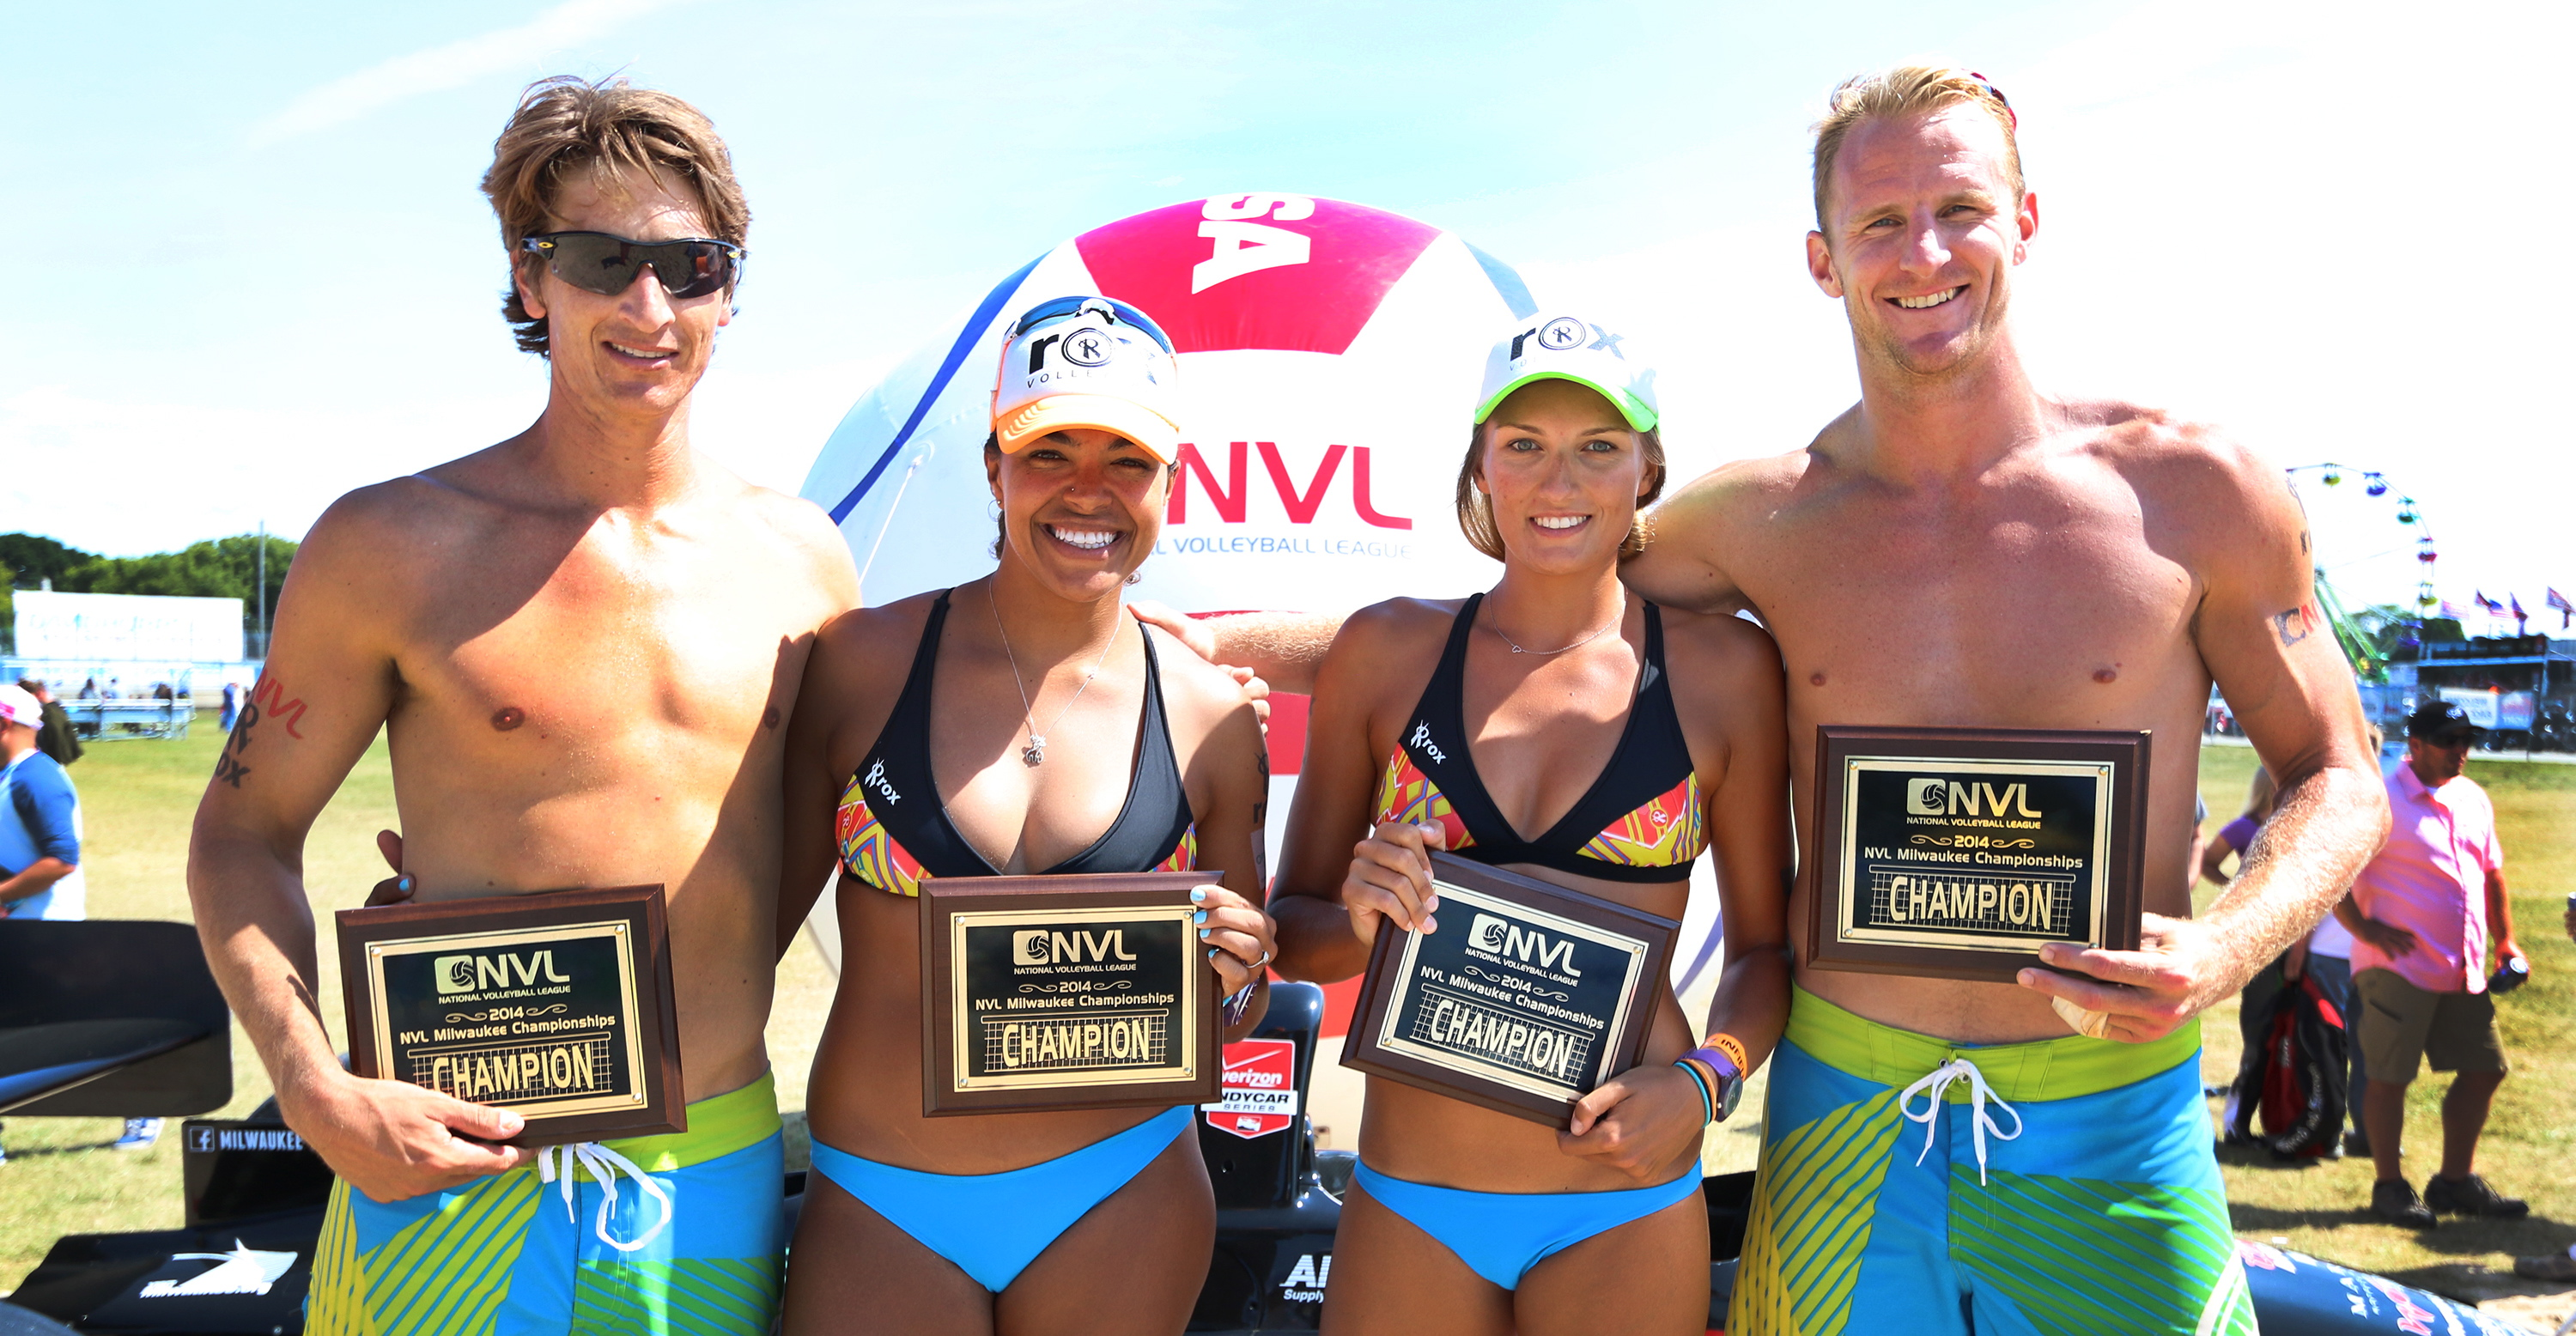 NVL Awards Men's & Women's Titles at 2014 Milwaukee Championships